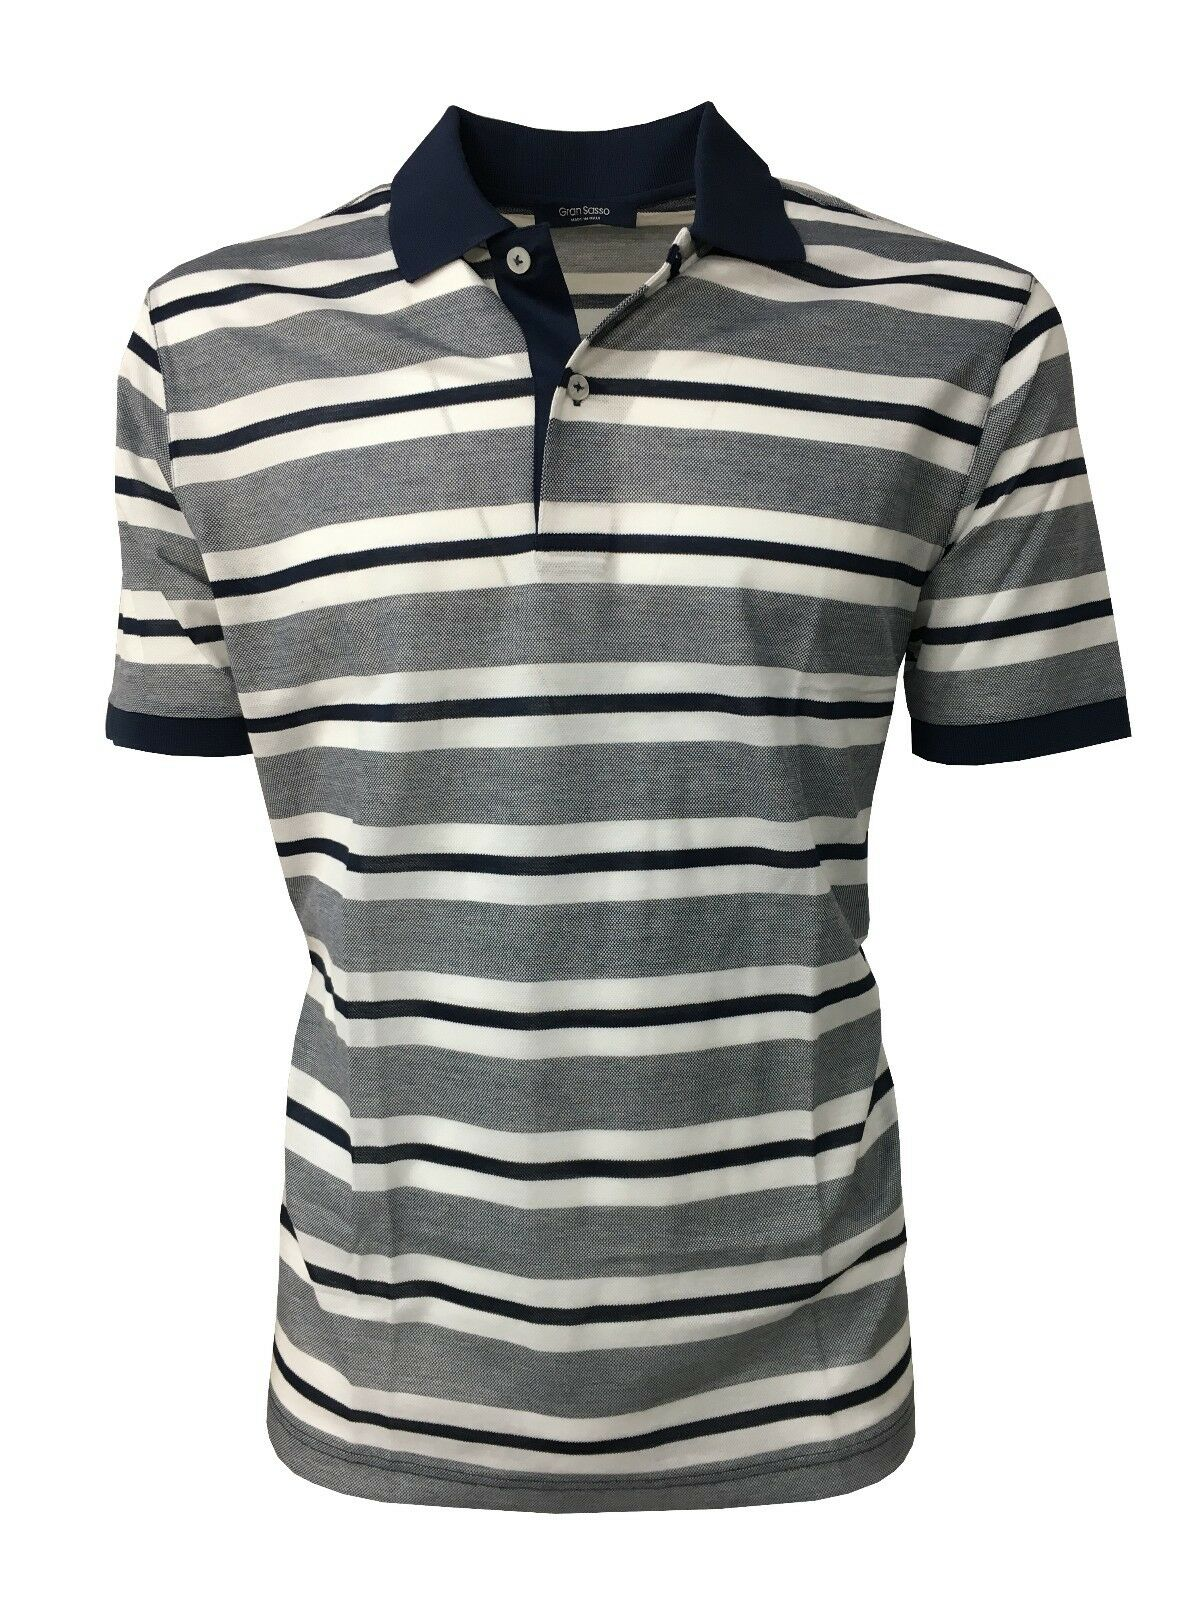 GRANSASSO short sleeve mens polo striped white bluee 100% cotton MADE IN ITALY